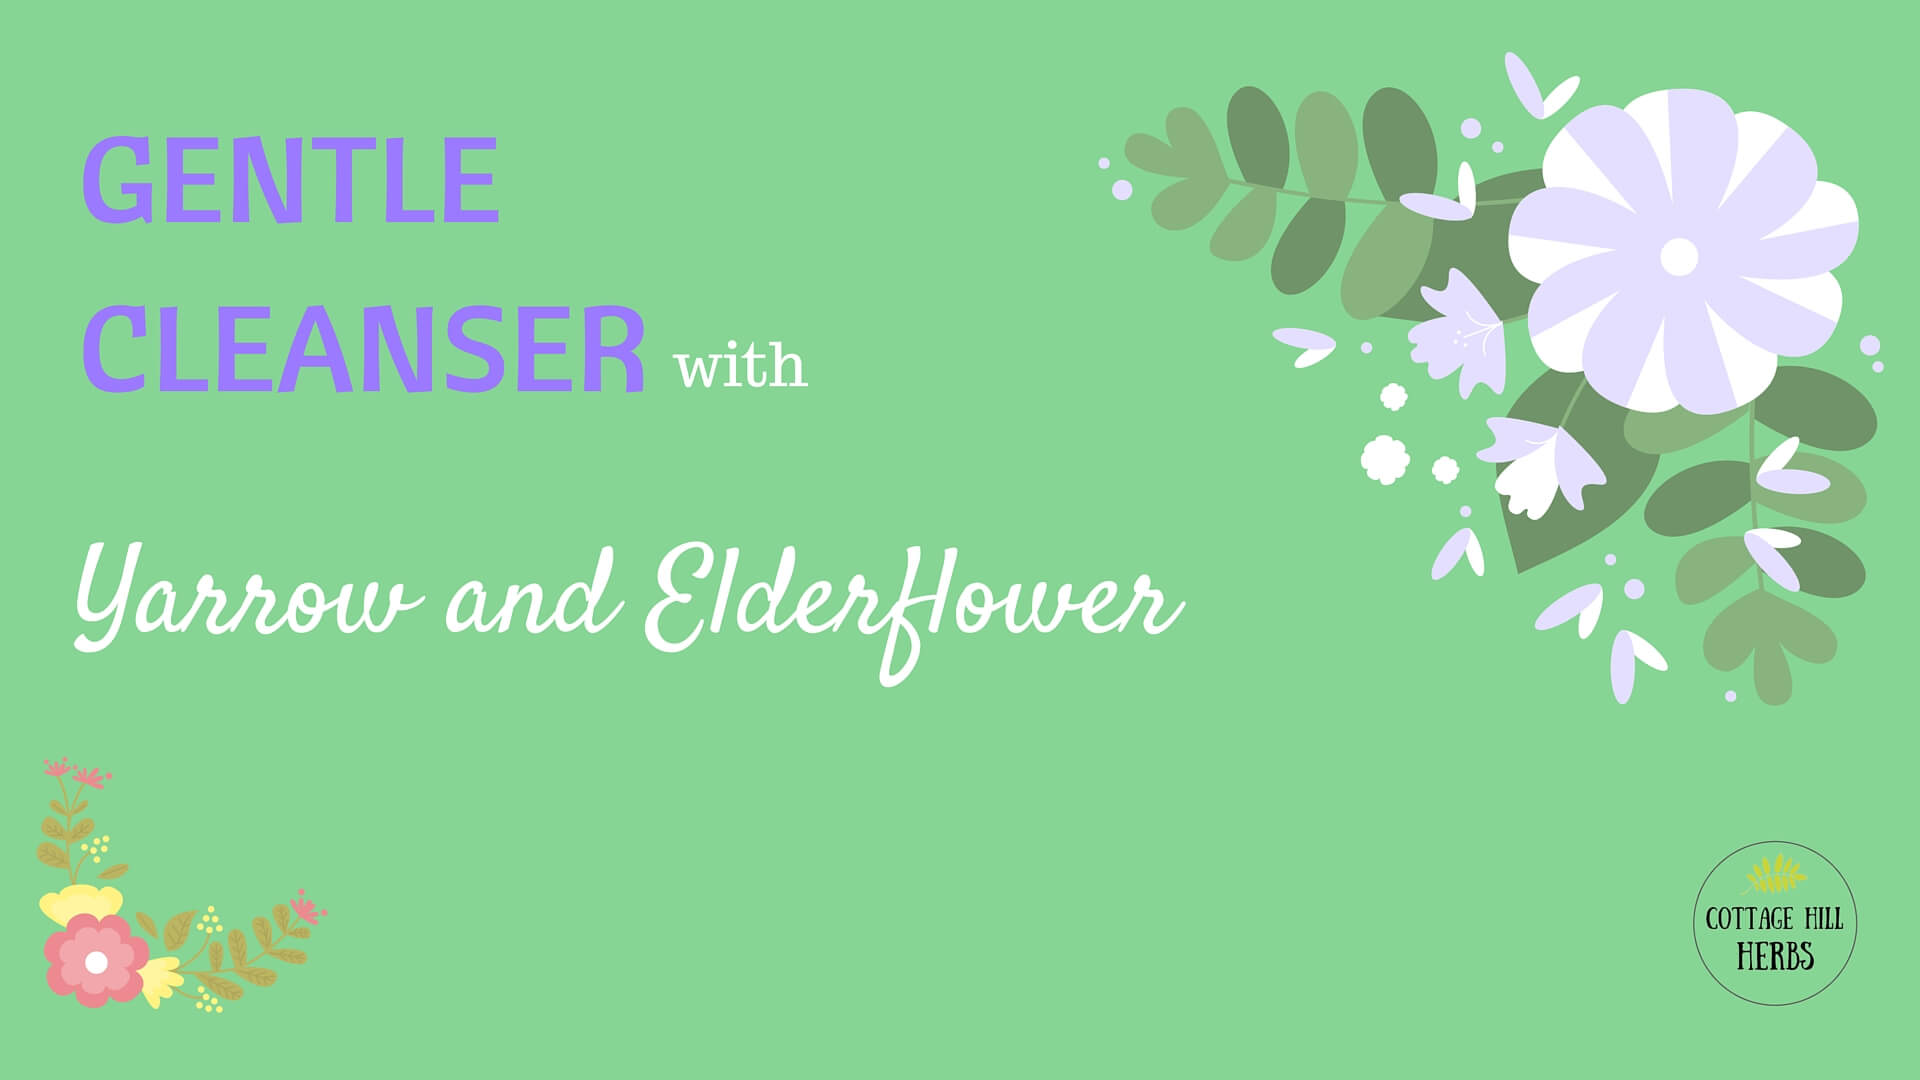 Yarrow and elderflower cleaner title image